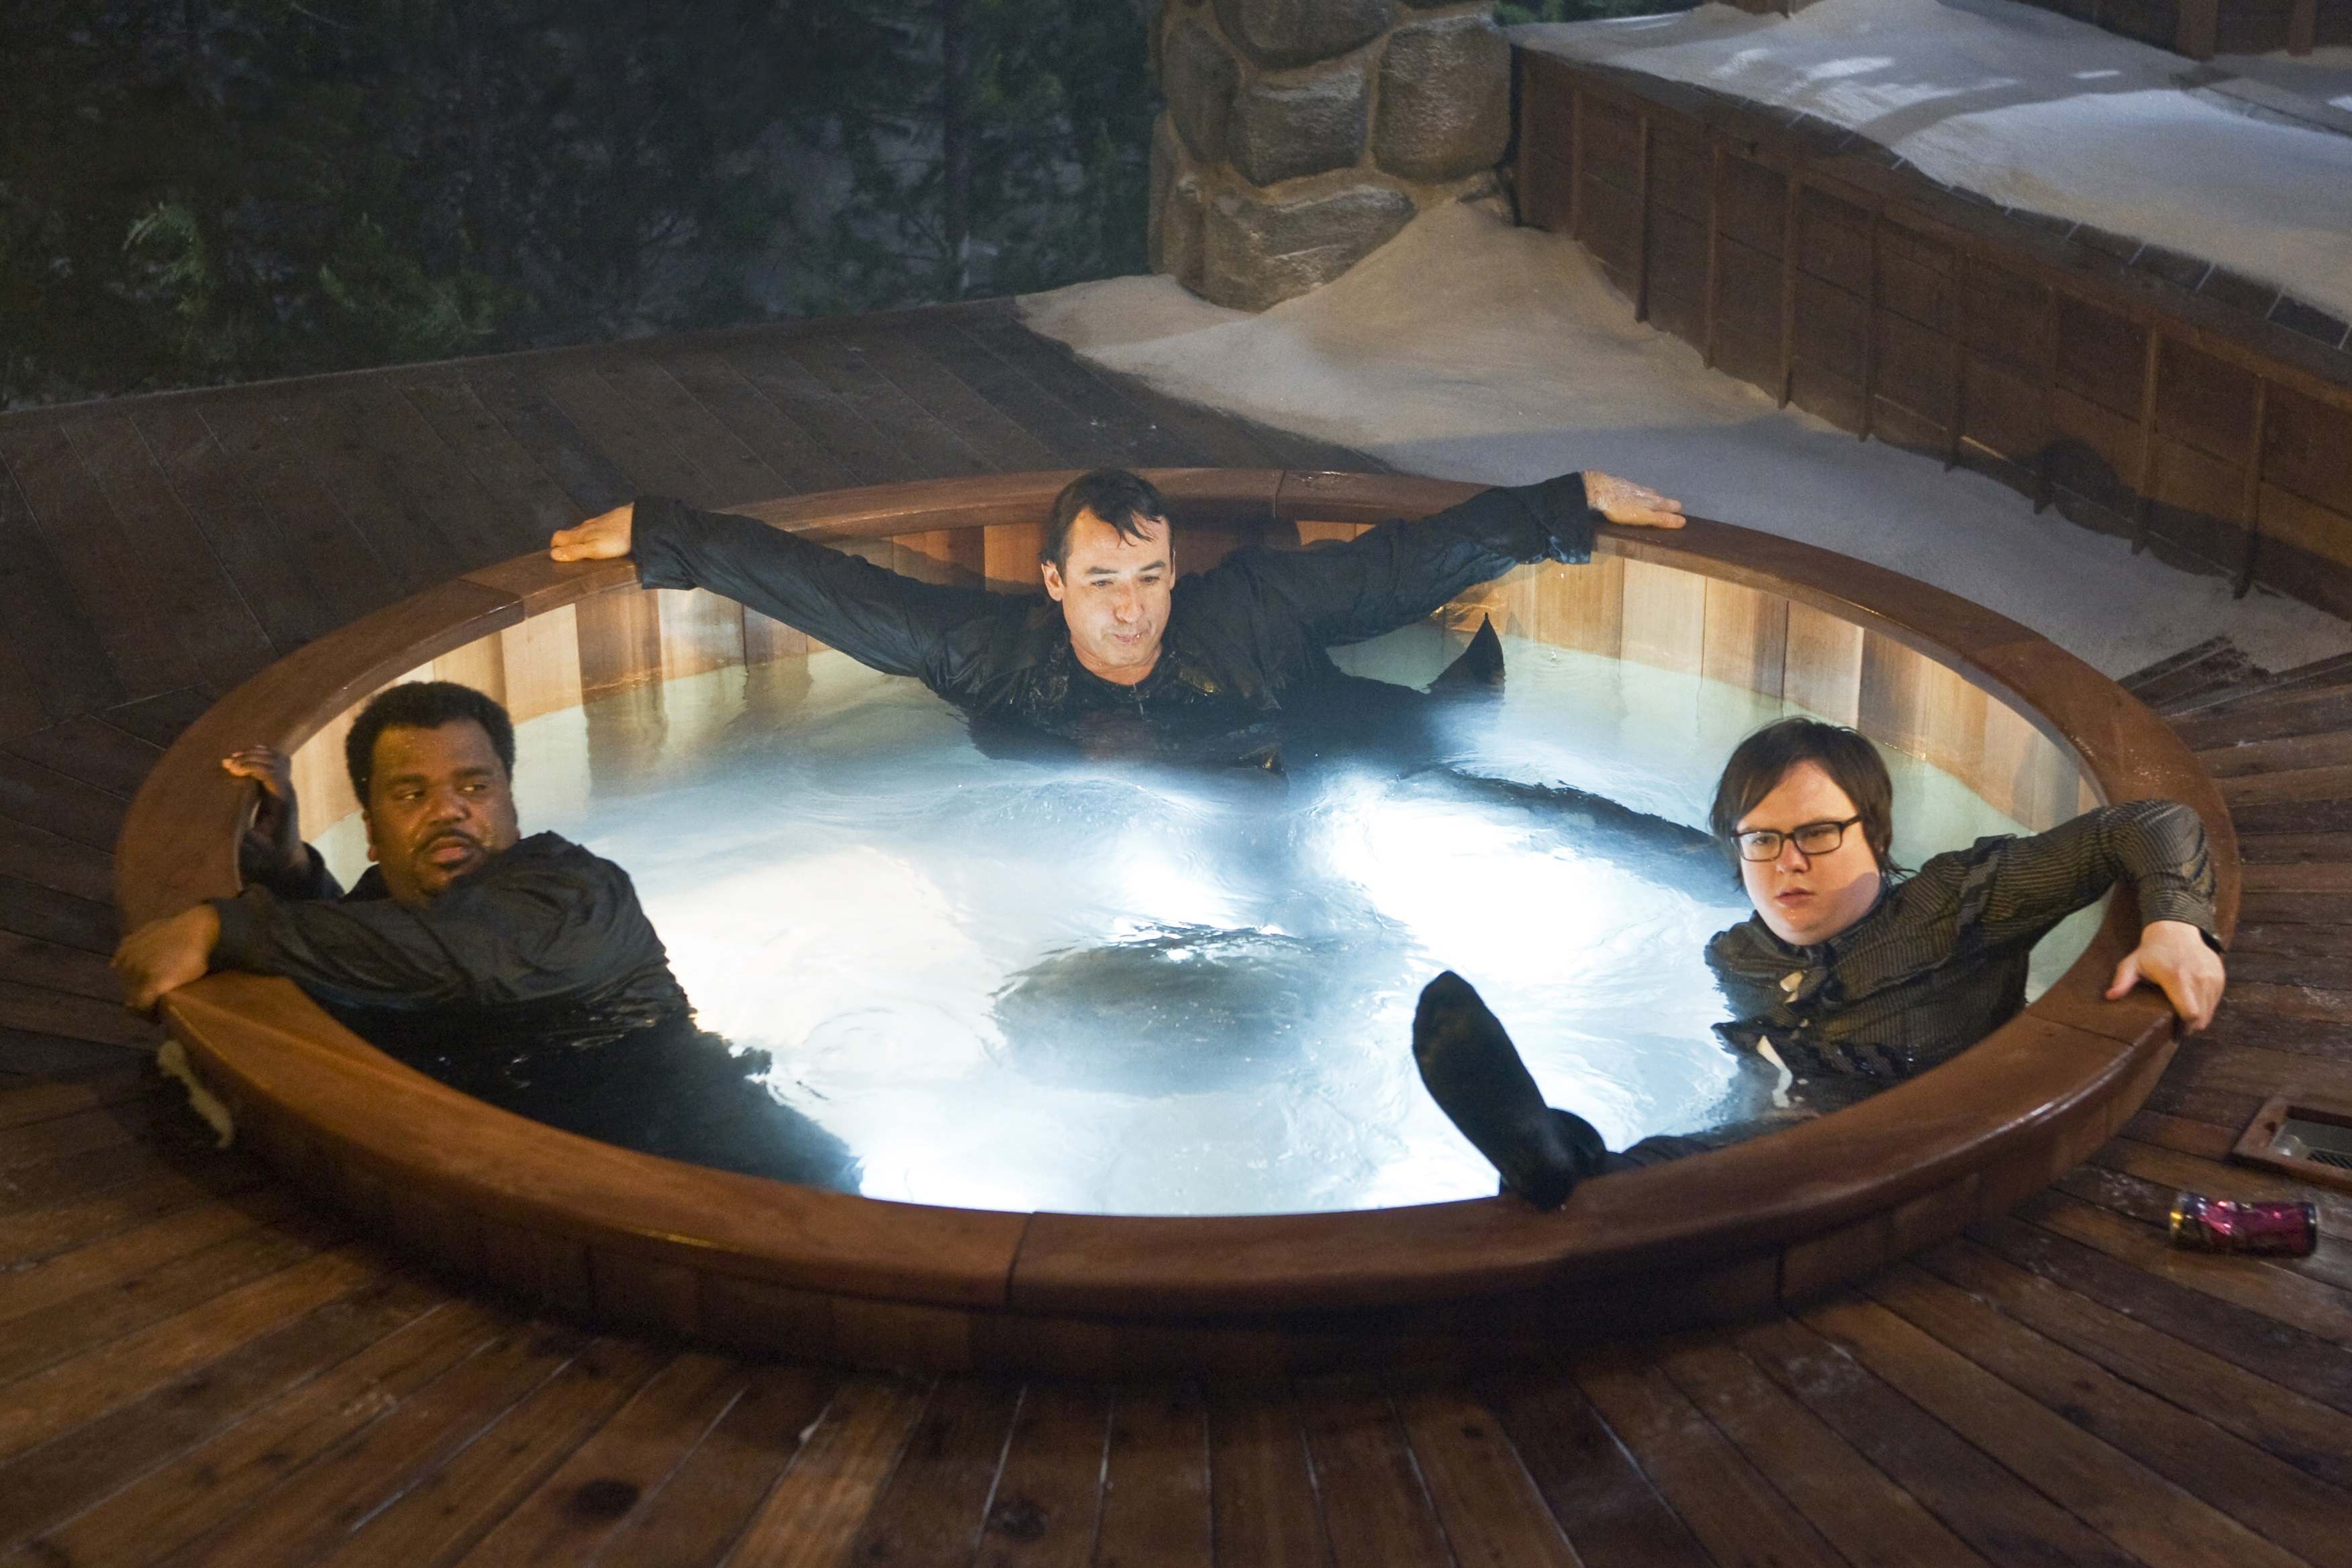 Blu-ray Kritik: Hot Tub Time Machine – Mit dem Whirlpool in die 80er